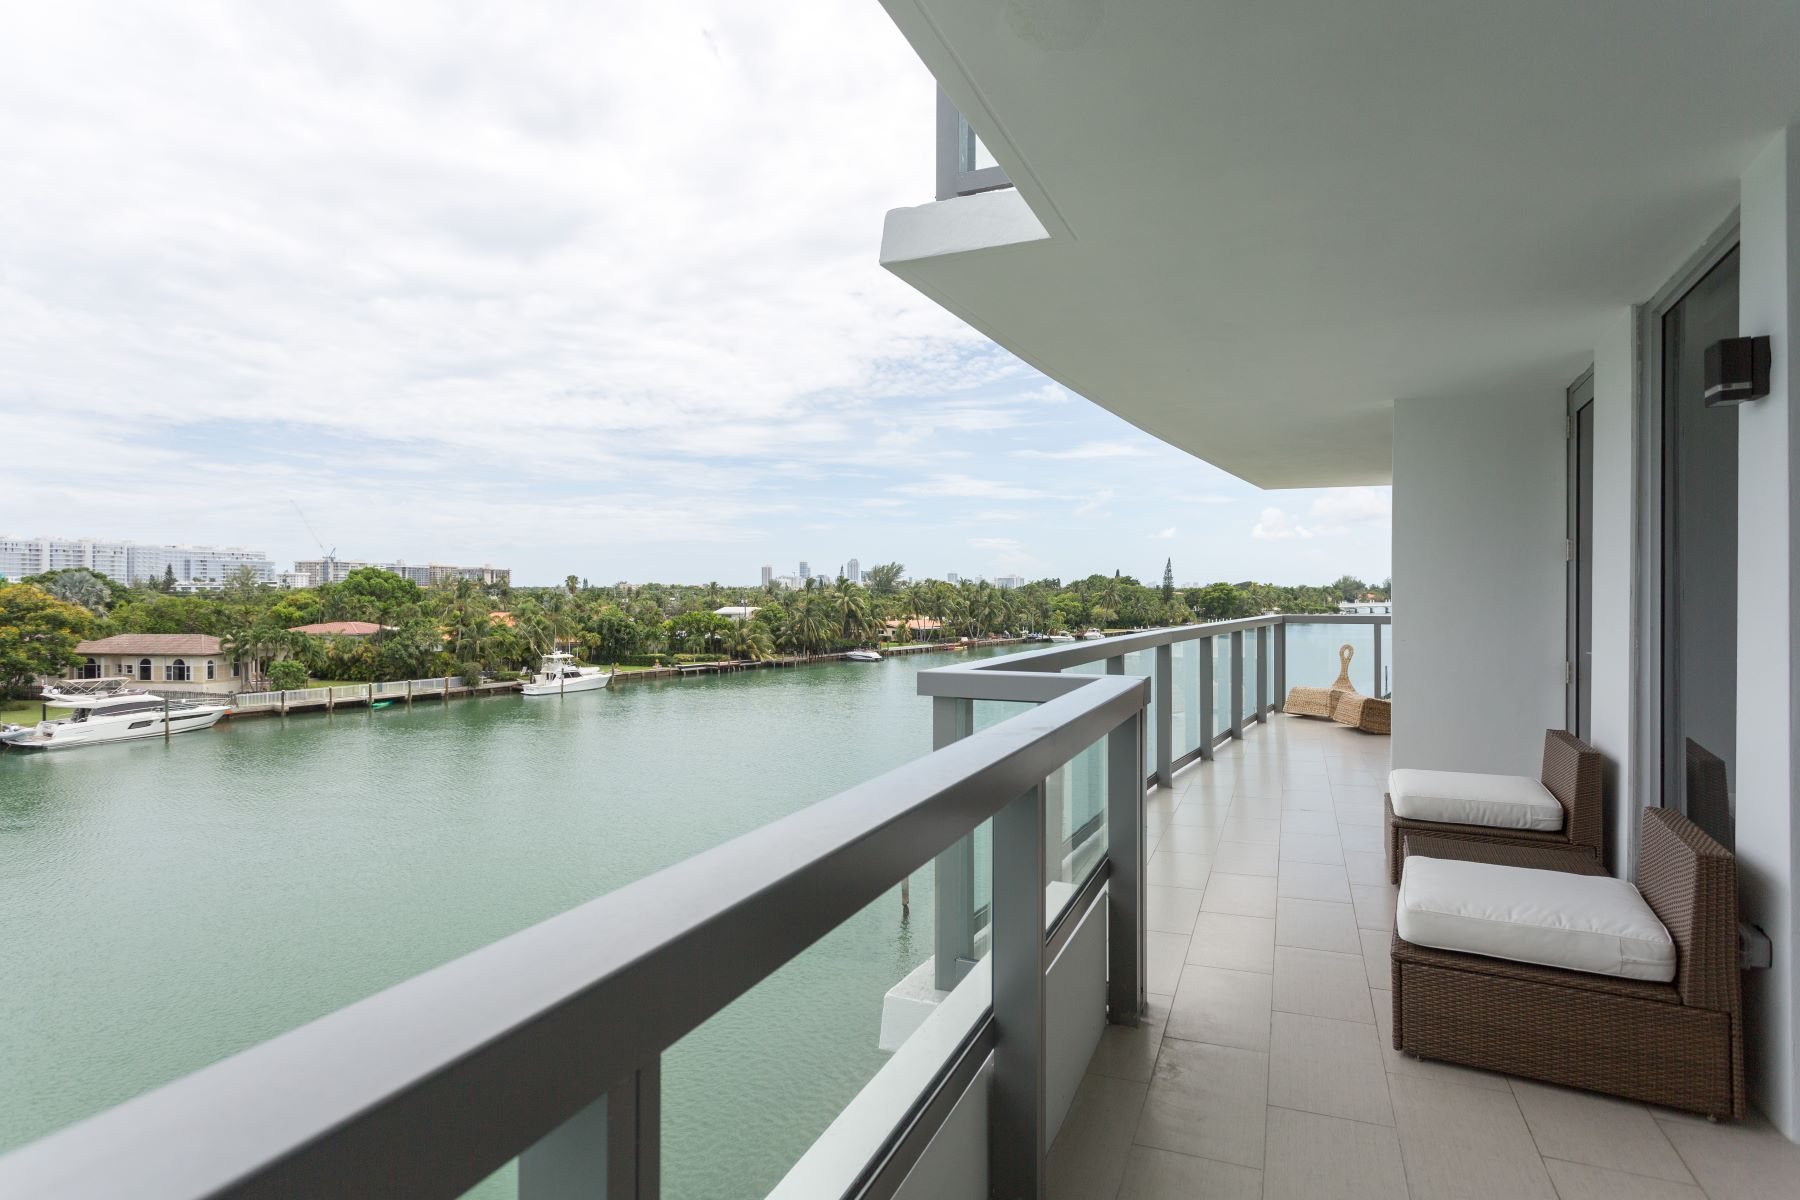 Condominiums for Sale at 9261 E Bay Harbor Dr #504 9261 E Bay Harbor Dr 504 Bay Harbor Islands, Florida 33154 United States